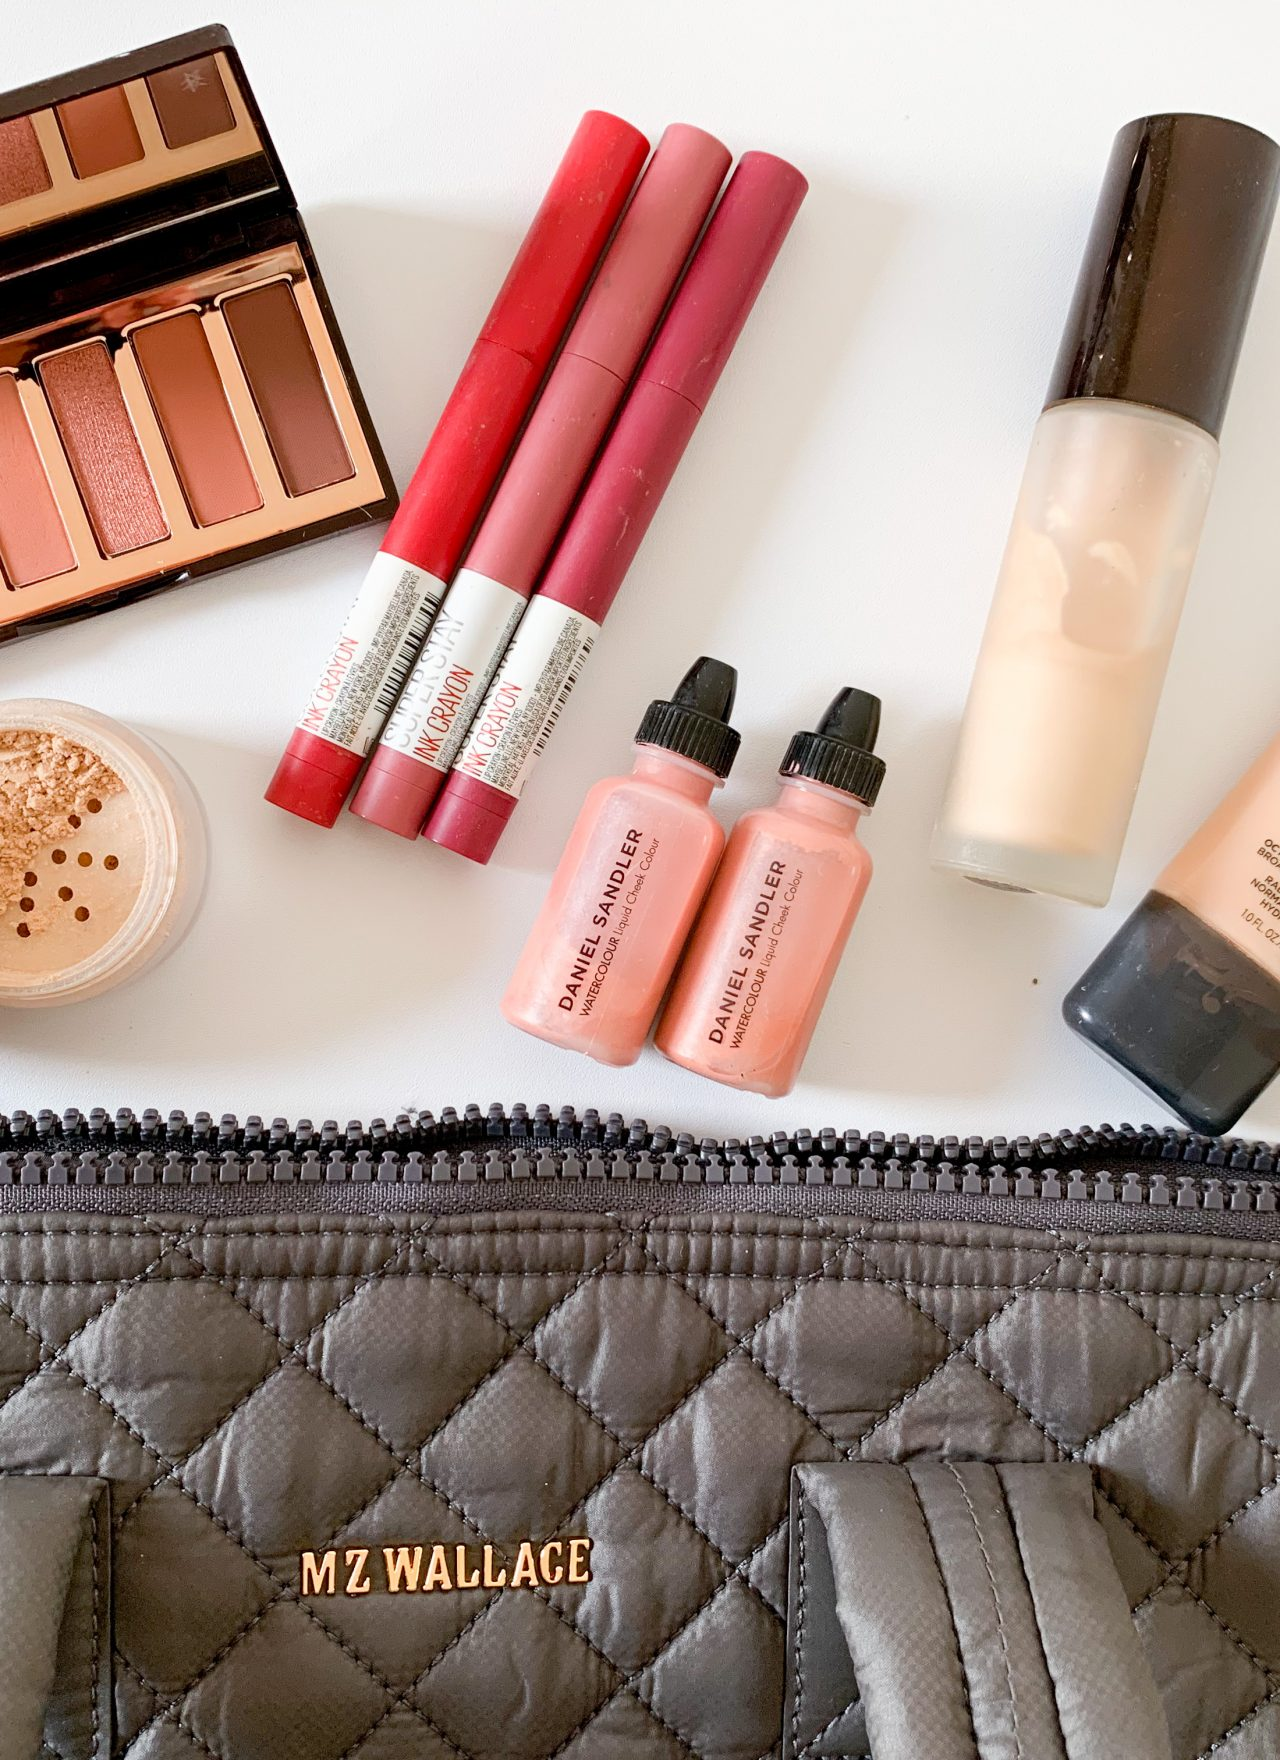 FALL MAKEUP TRENDS & PRODUCT UPDATES | I am sharing some fall makeup trends, products and a tutorial to keep your makeup seasonal and ready for the cooler temps.